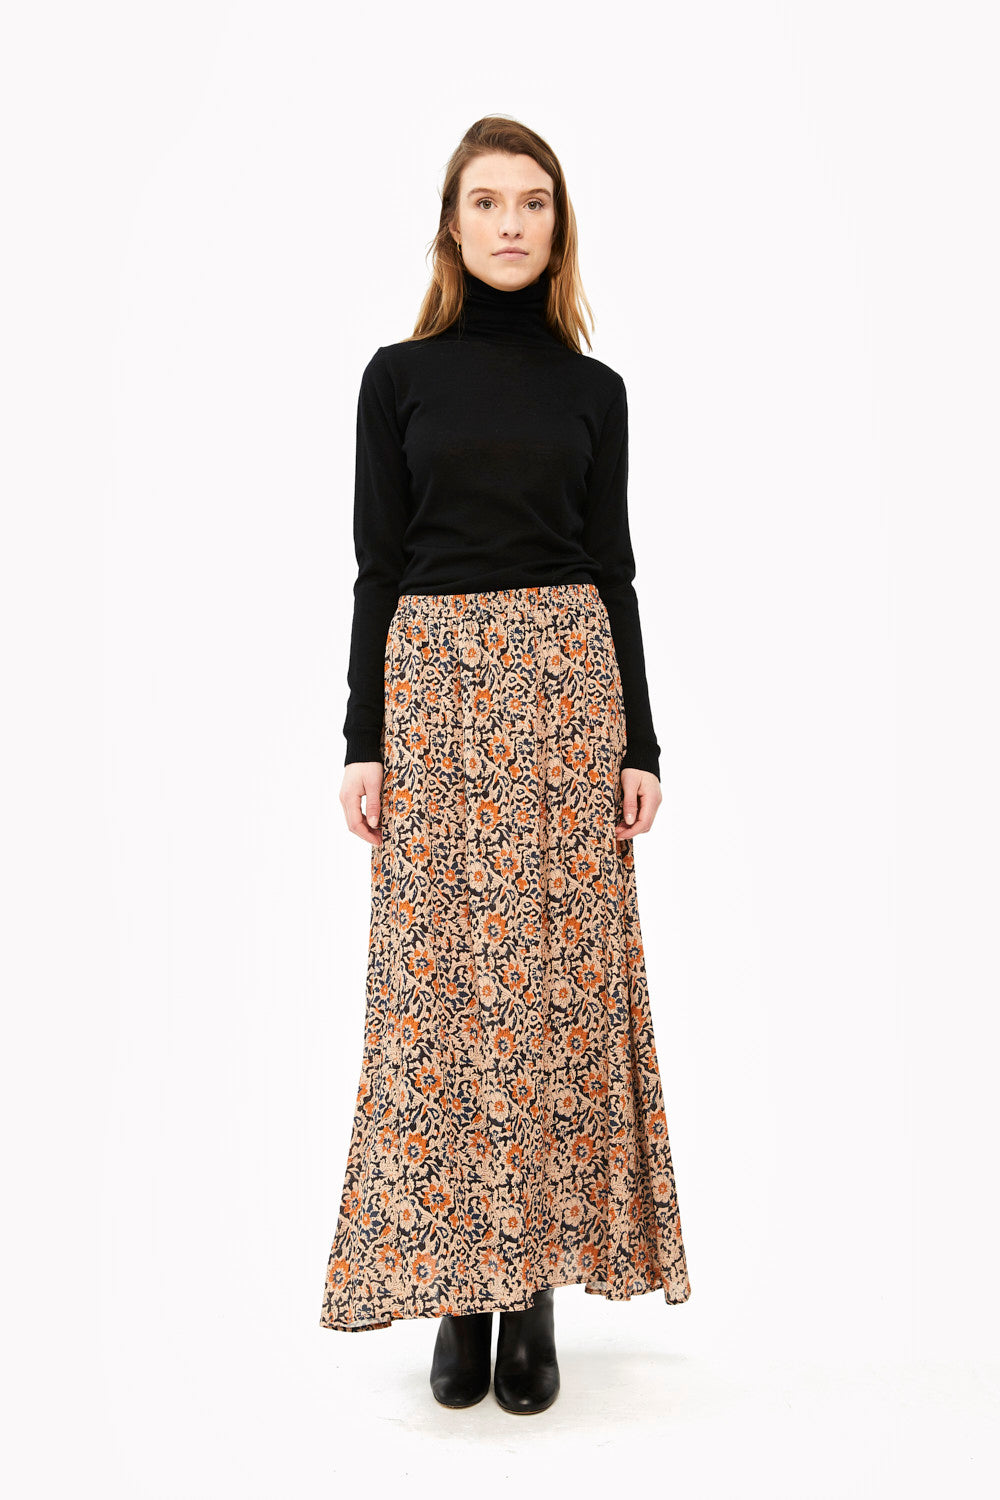 By-Bar - pleun sunflower skirt indigo blue